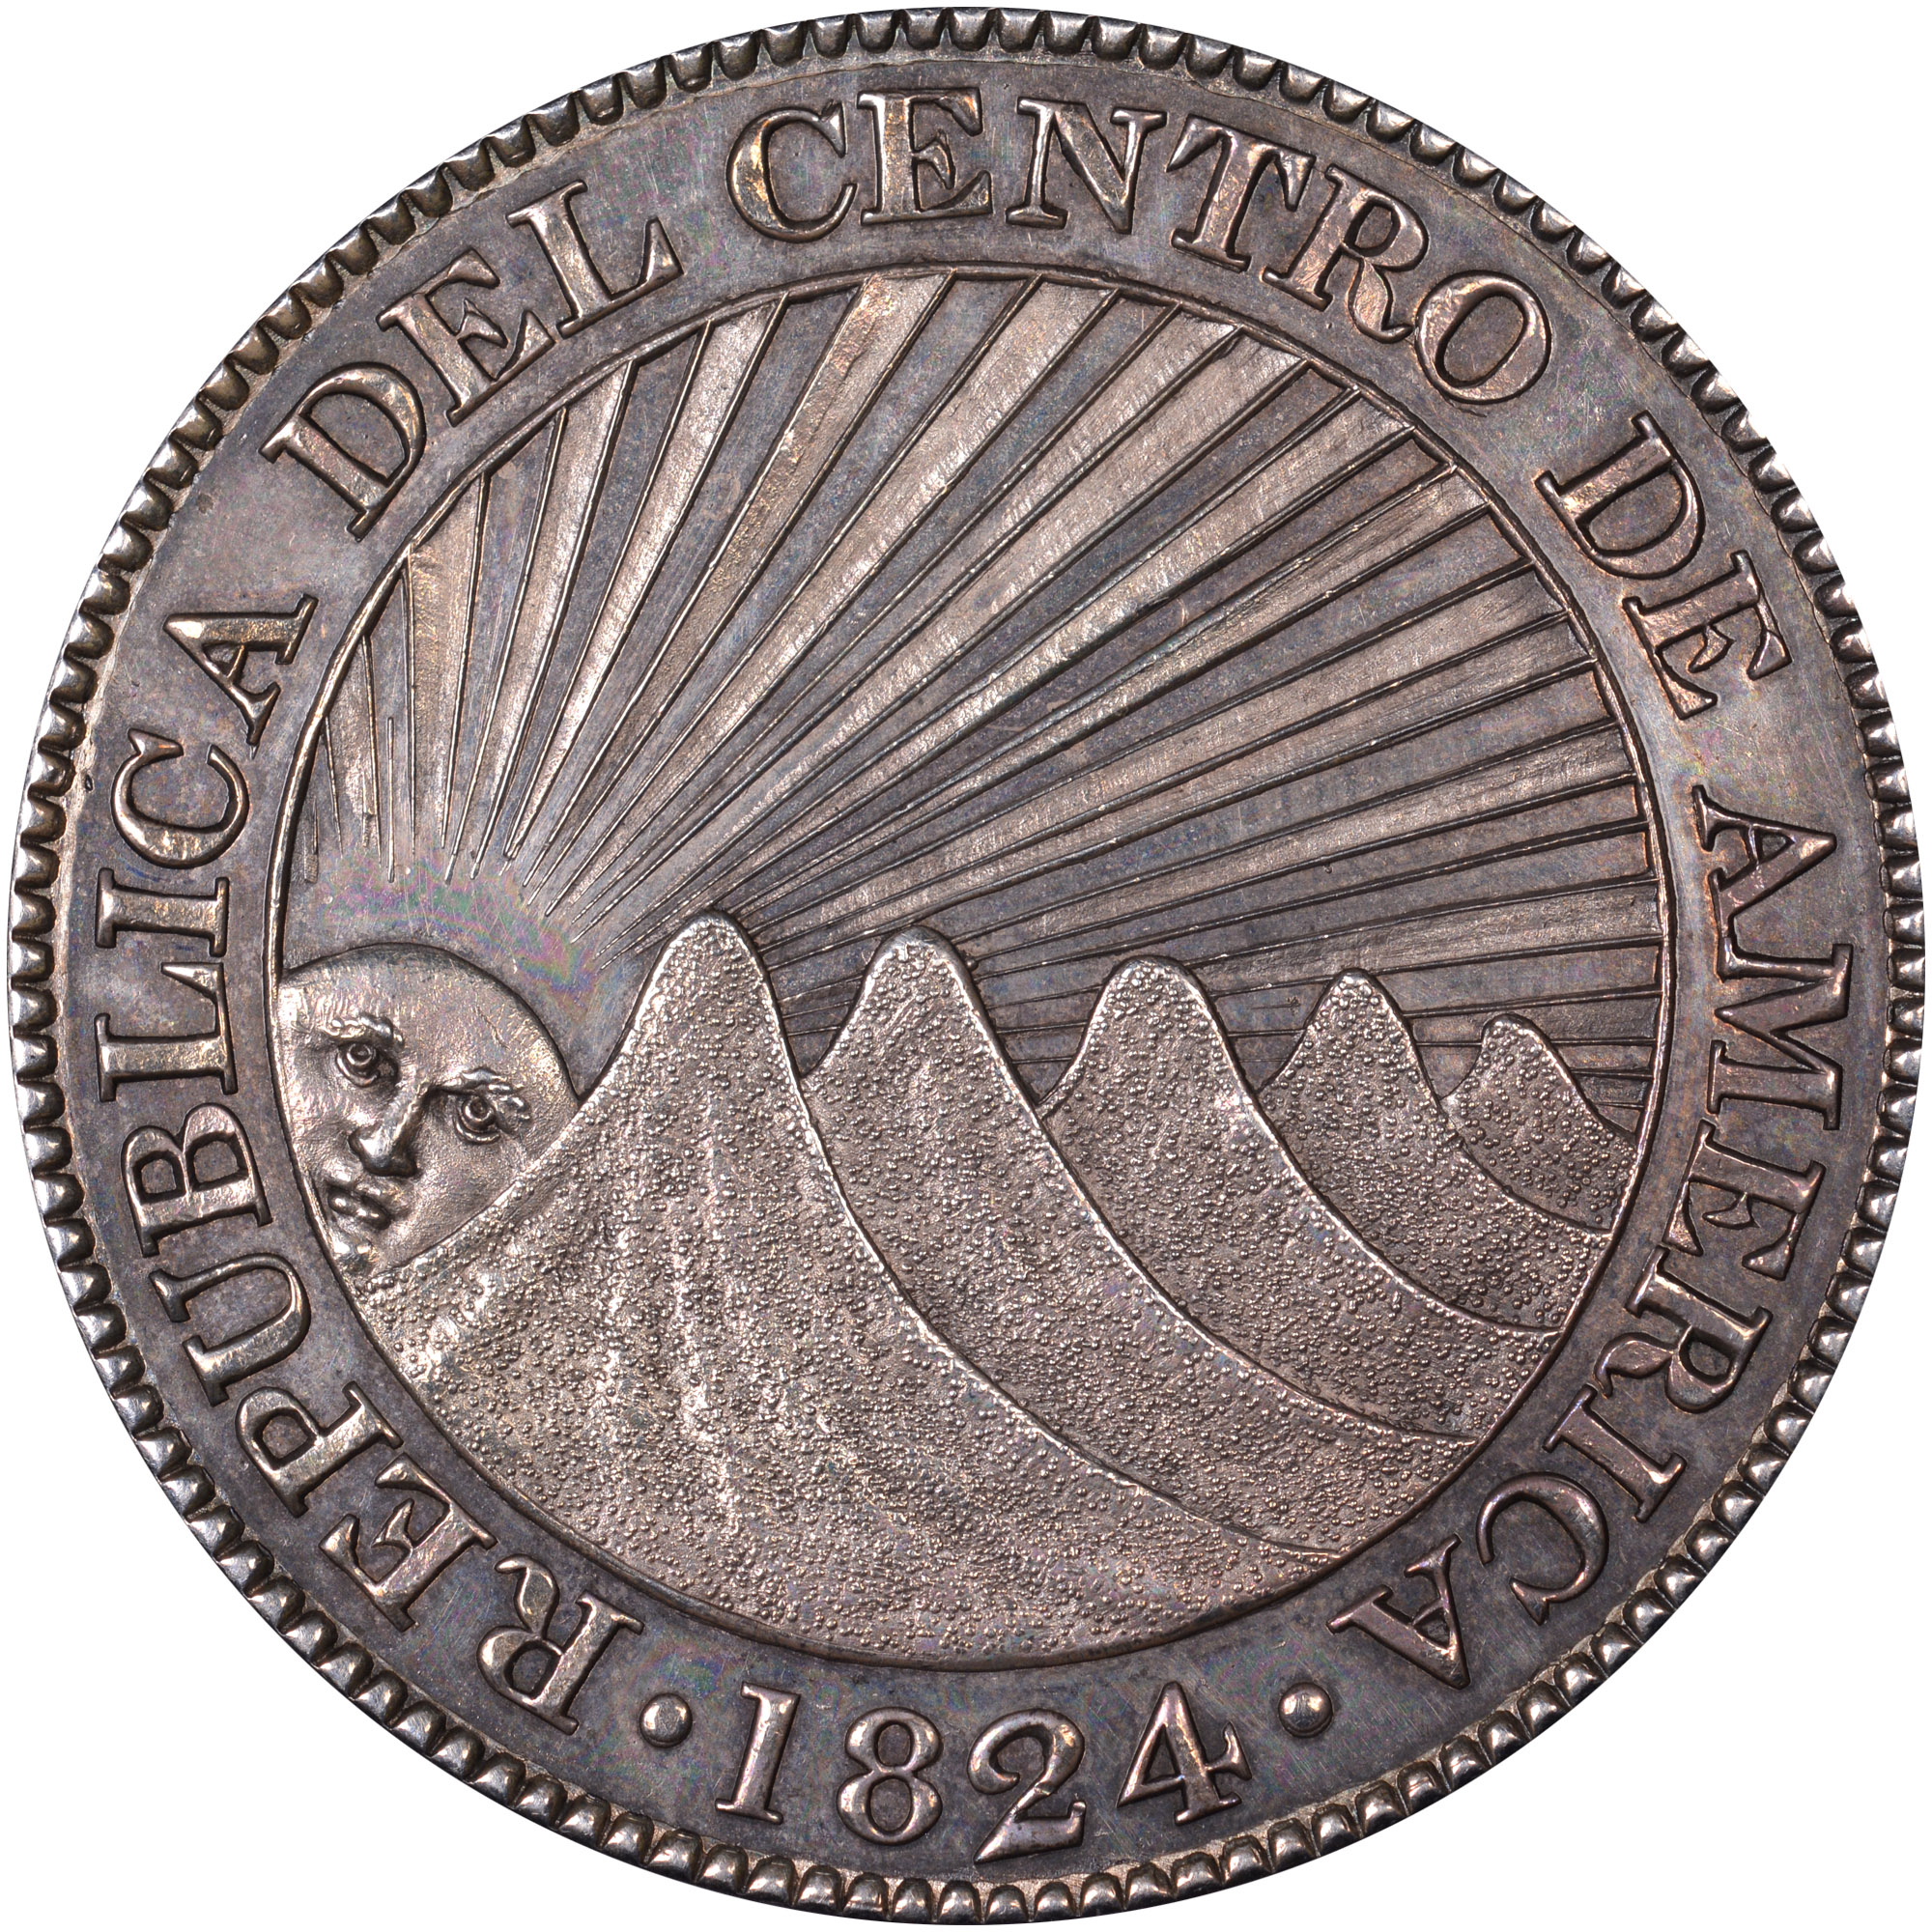 1824-1847/6 Central American Republic 8 Reales obverse